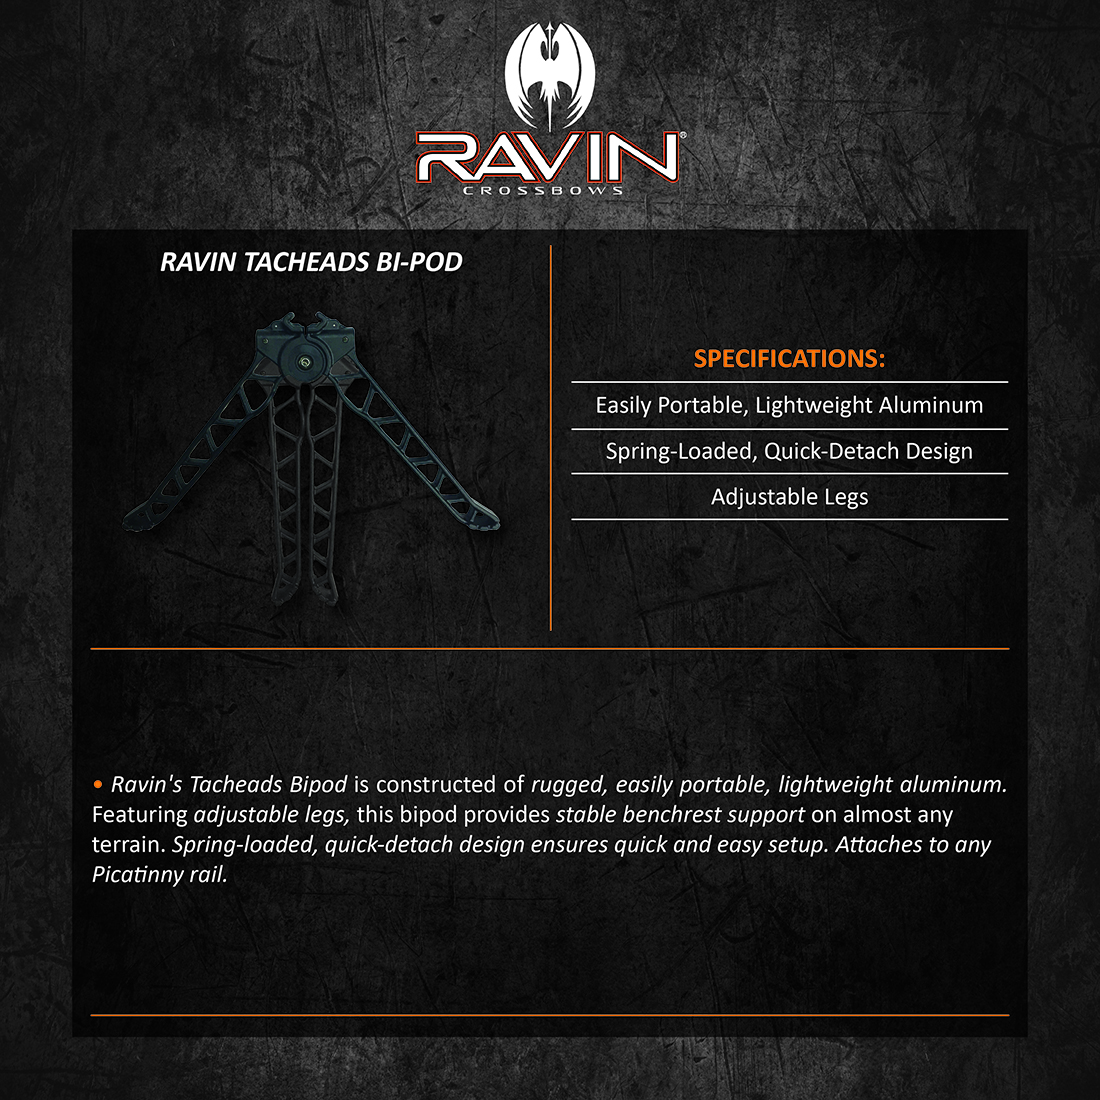 Ravin_Tacheads_BiPod_Product_Description